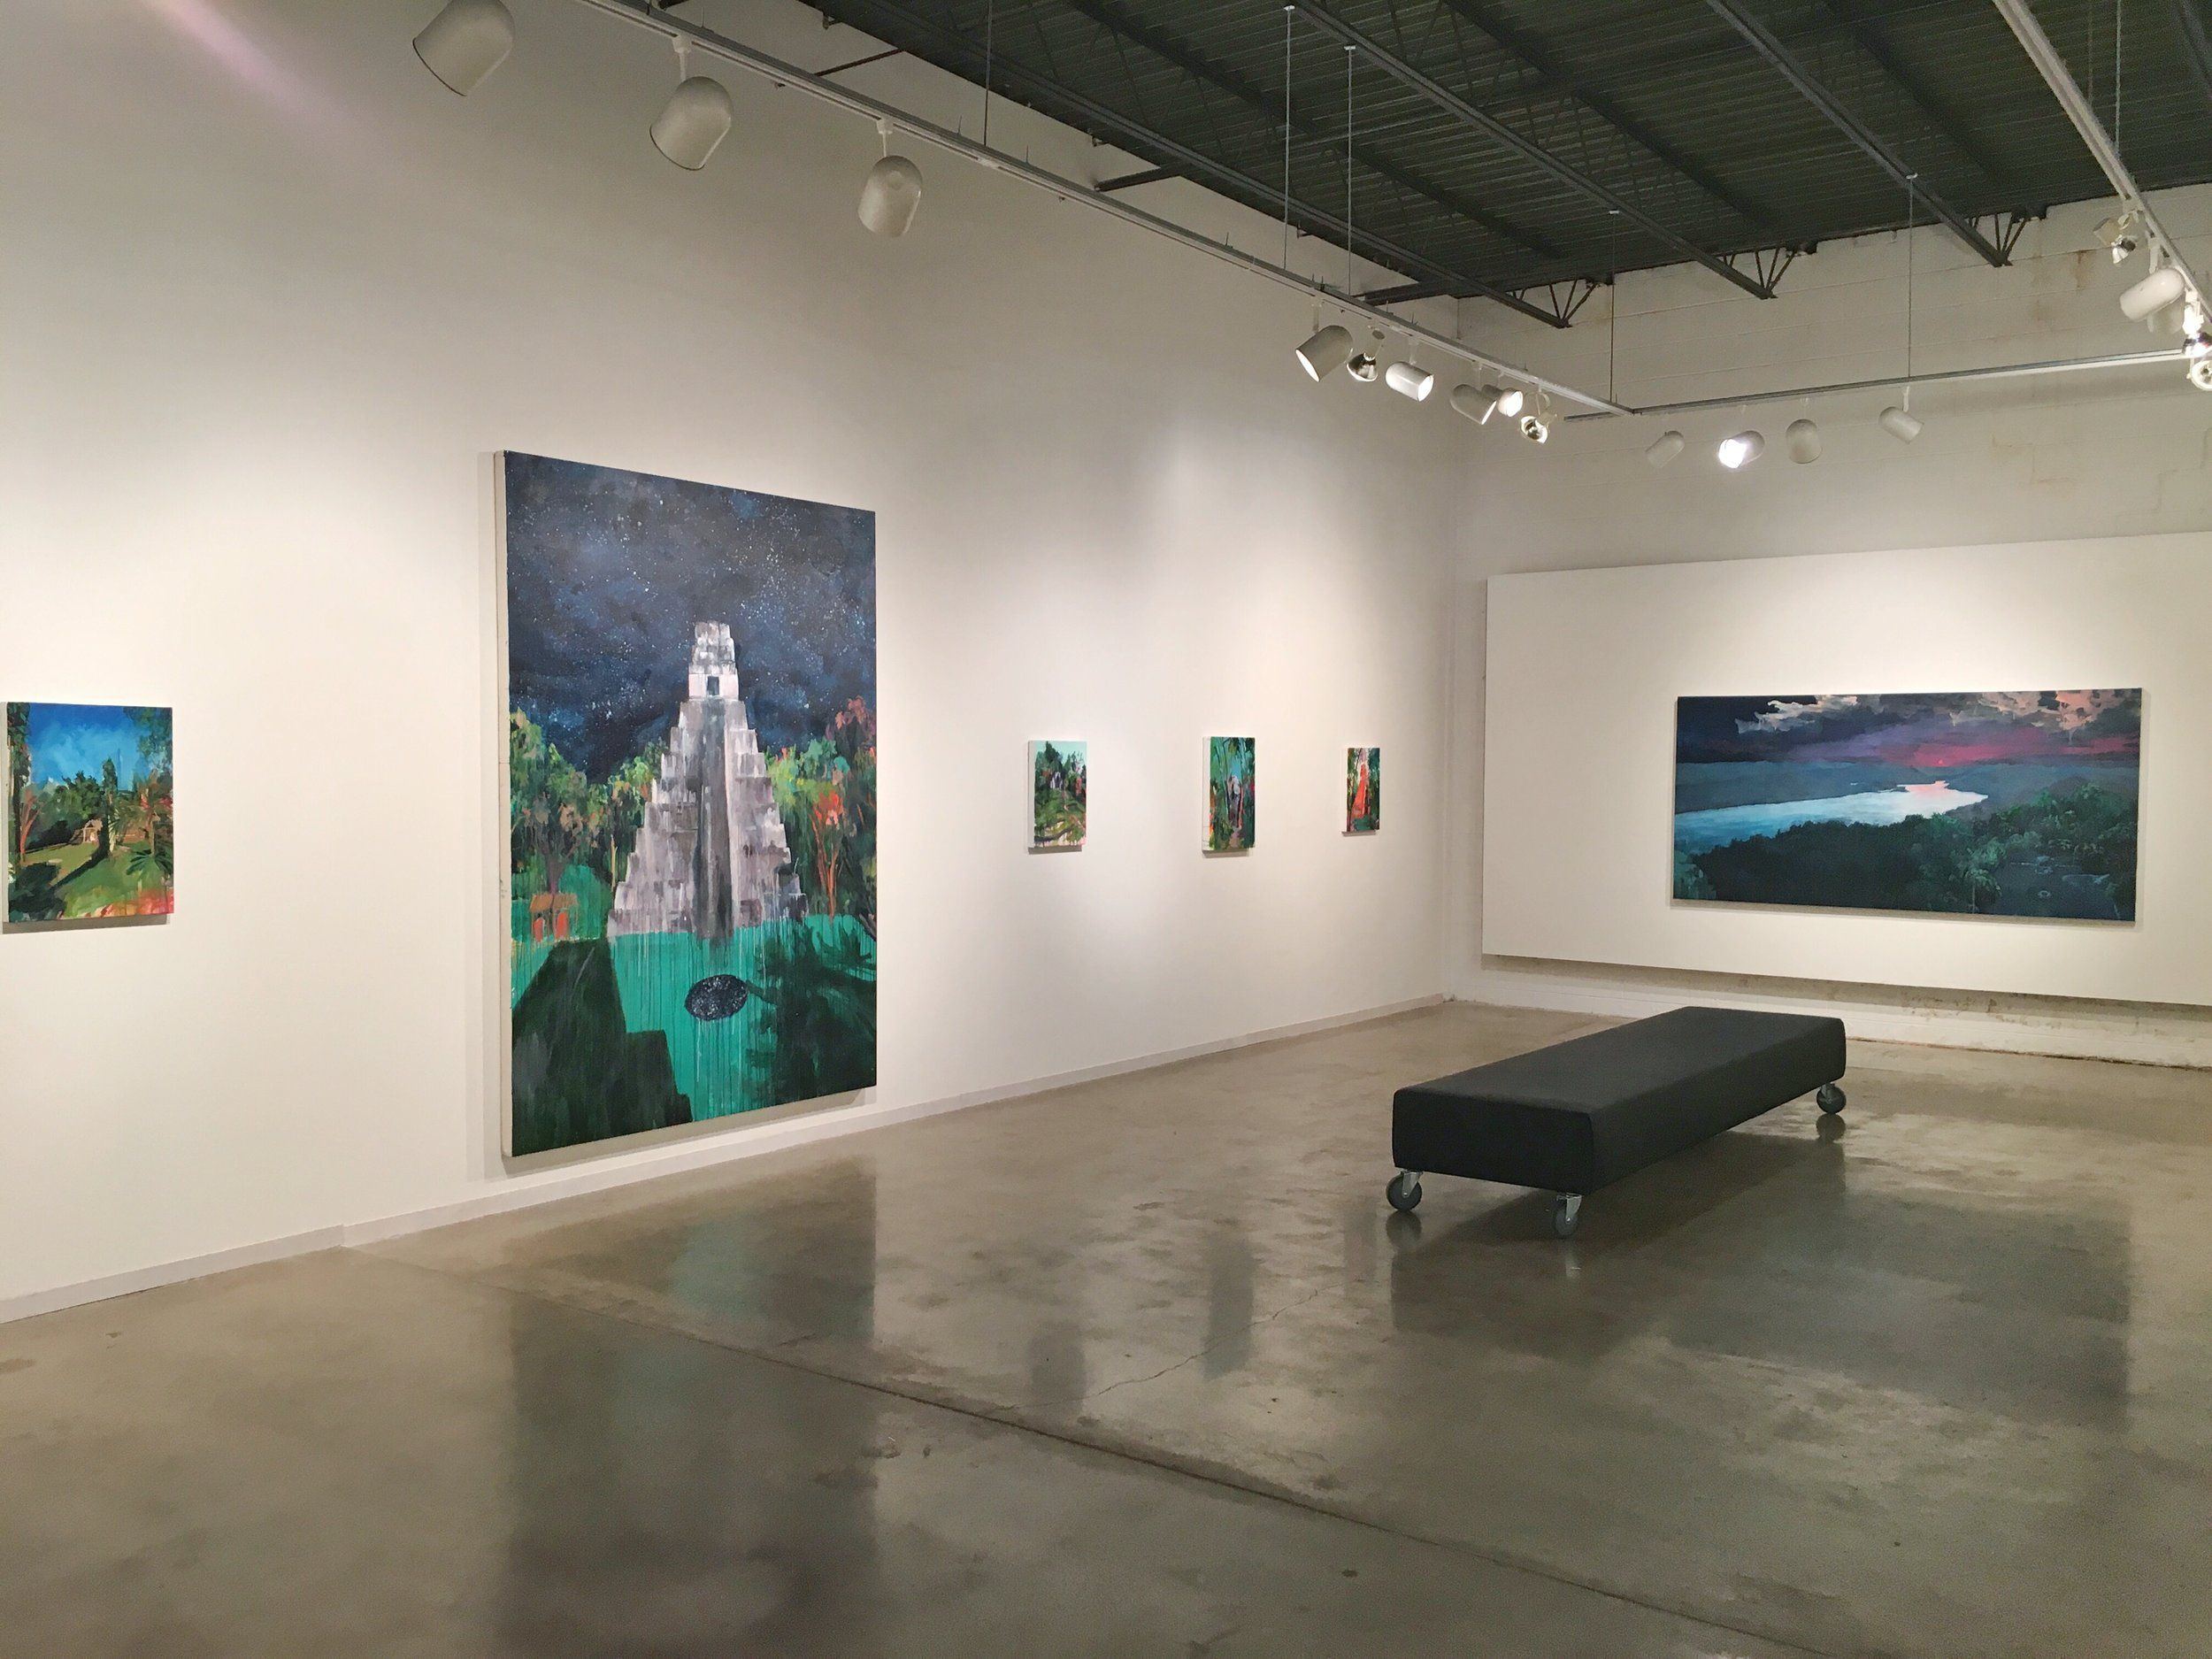 Here are some installation shots of the show.